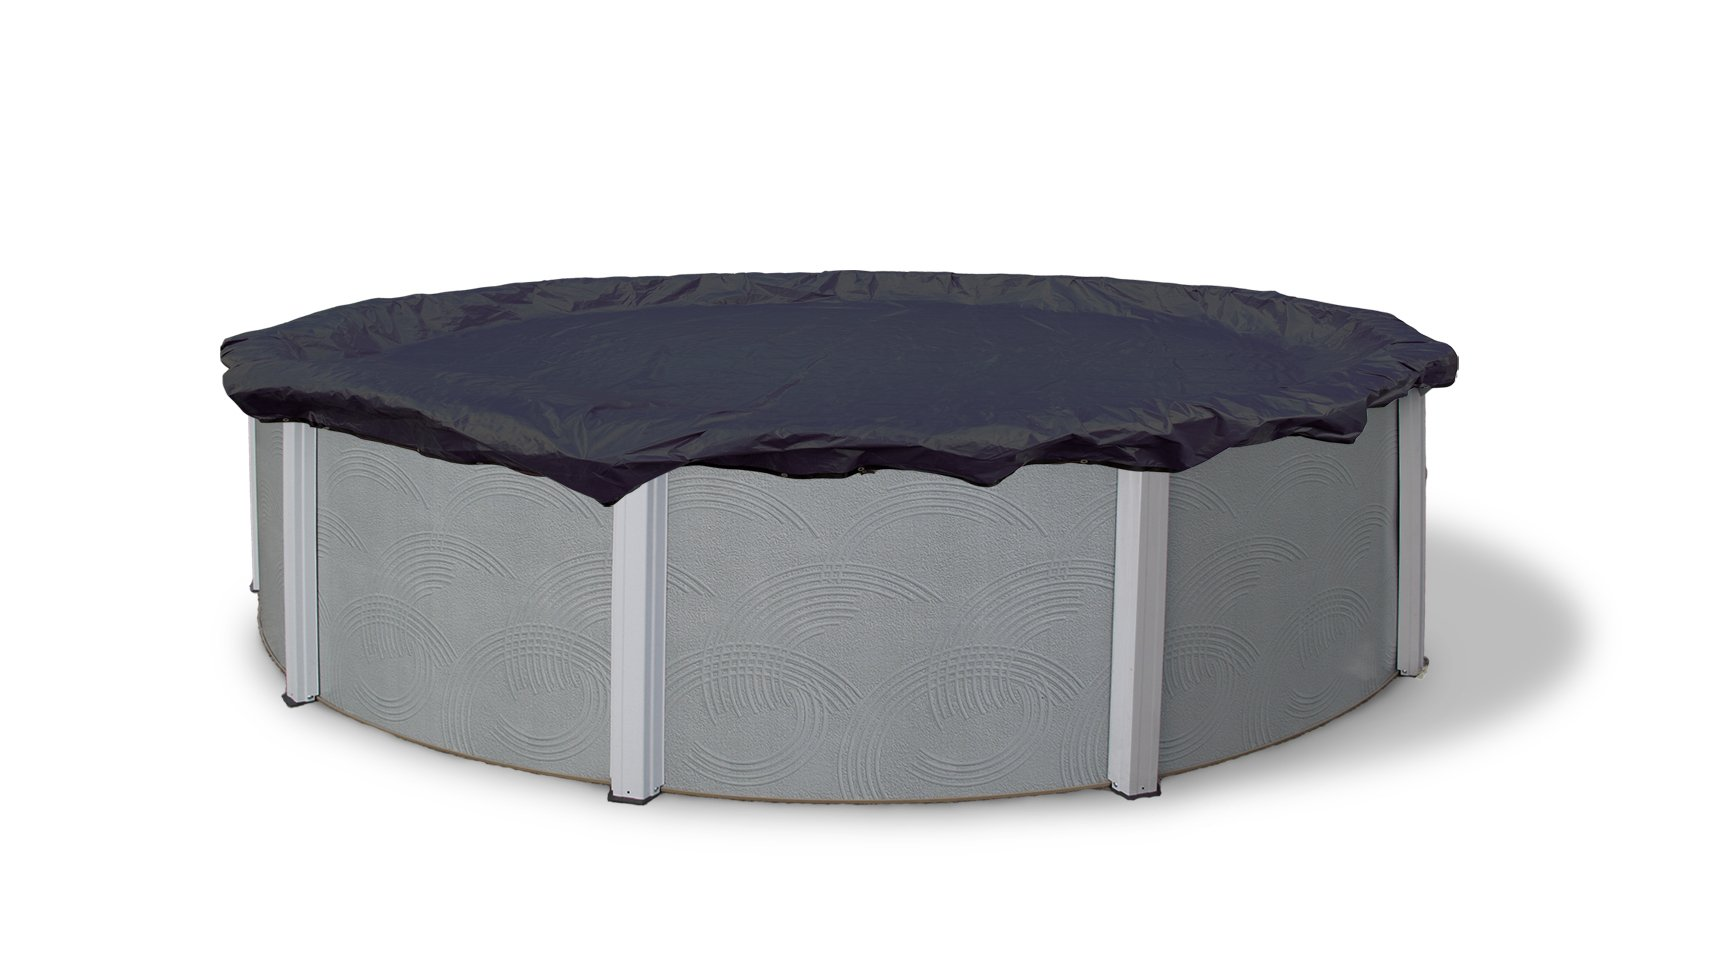 Bronze Arctic Armor Winter Cover for 33ft Round Above Ground Pools